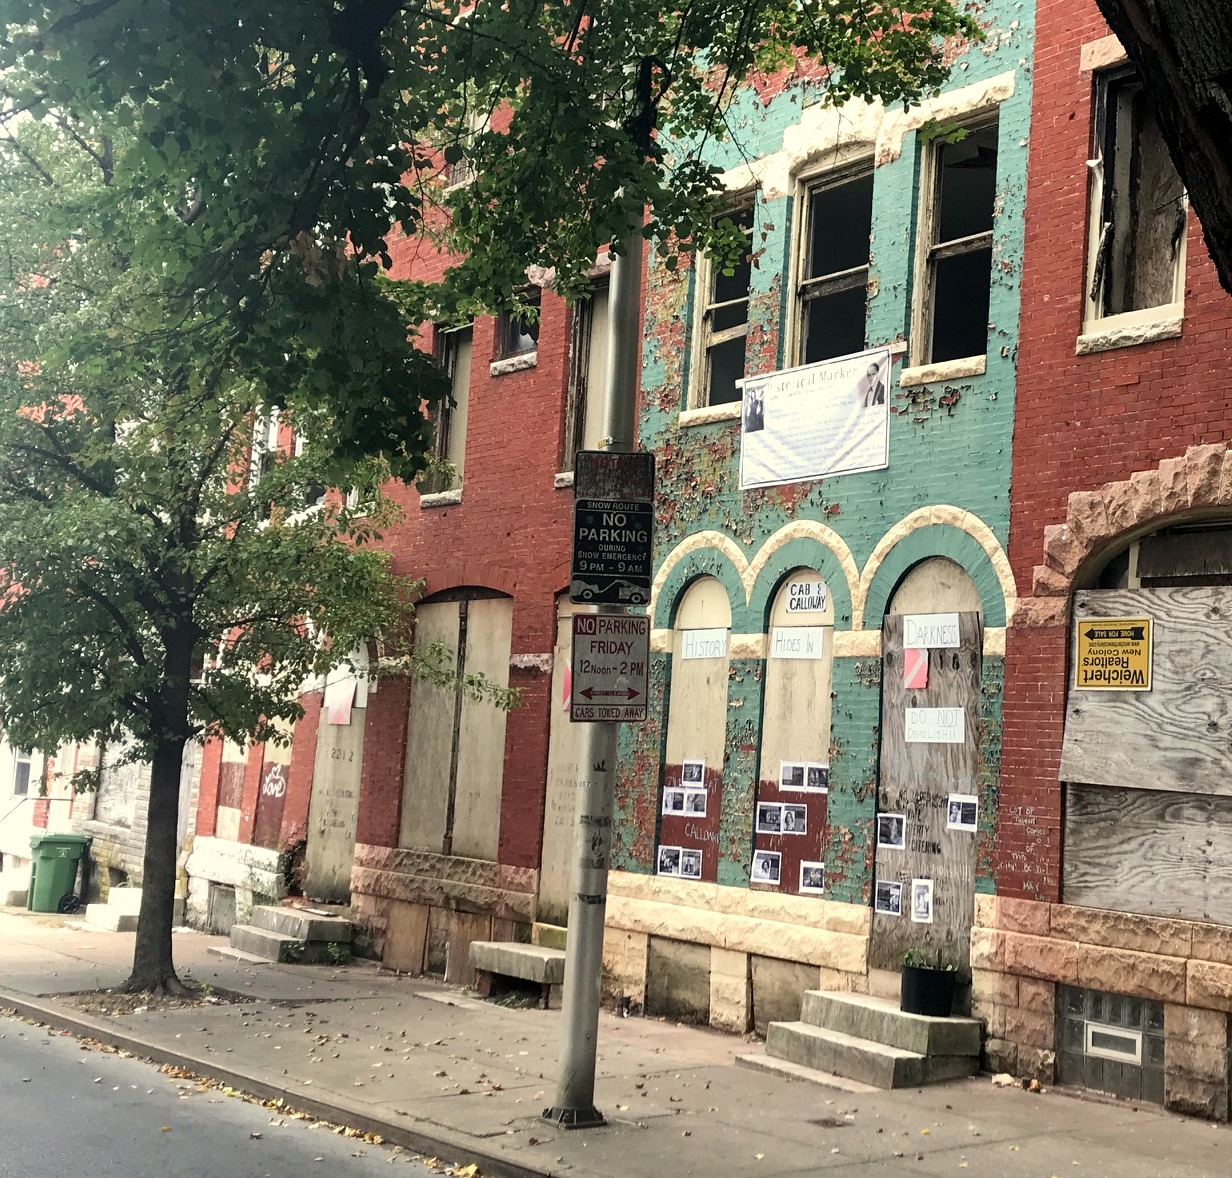 The Cab Calloway house, festooned with signs calling on it to preserved, is among a row of city-owned vacants that HCD today confirmed will soon be torn down. (Mark Reutter)